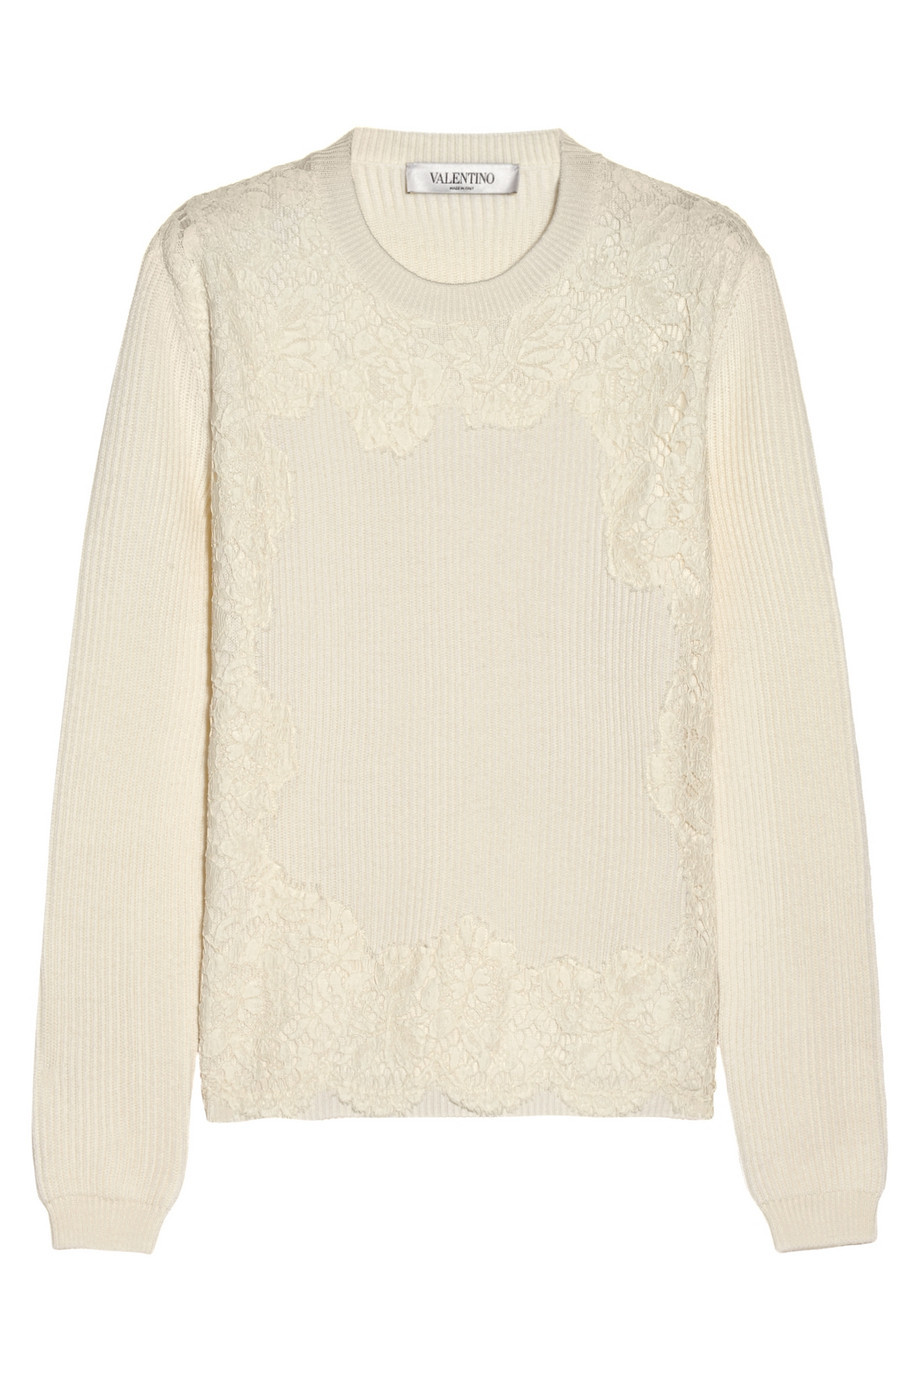 Valentino   Lace-appliquéd cotton-blend sweater   NET-A-PORTER.COM_files.jpg